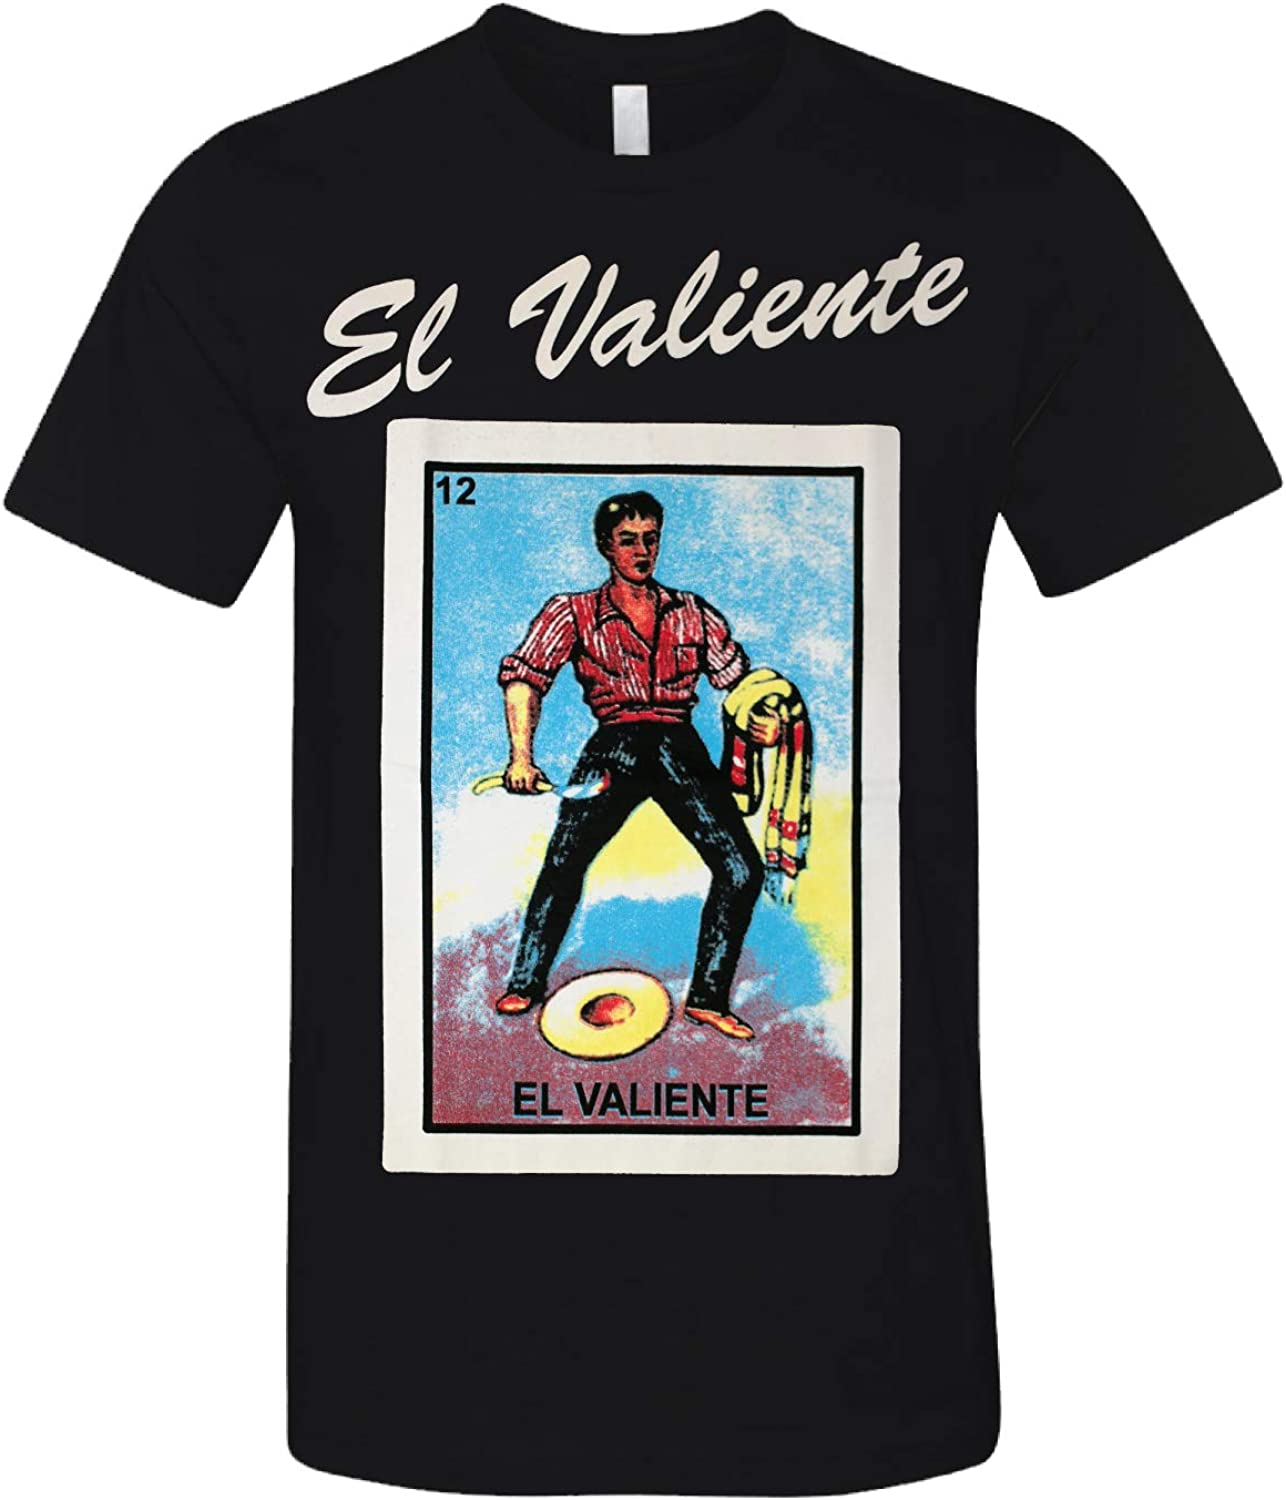 DOBY El Valiente Mexican Bingo Inspired Arts Printed Funny Adult Graphic T-Shirt Black X-Large